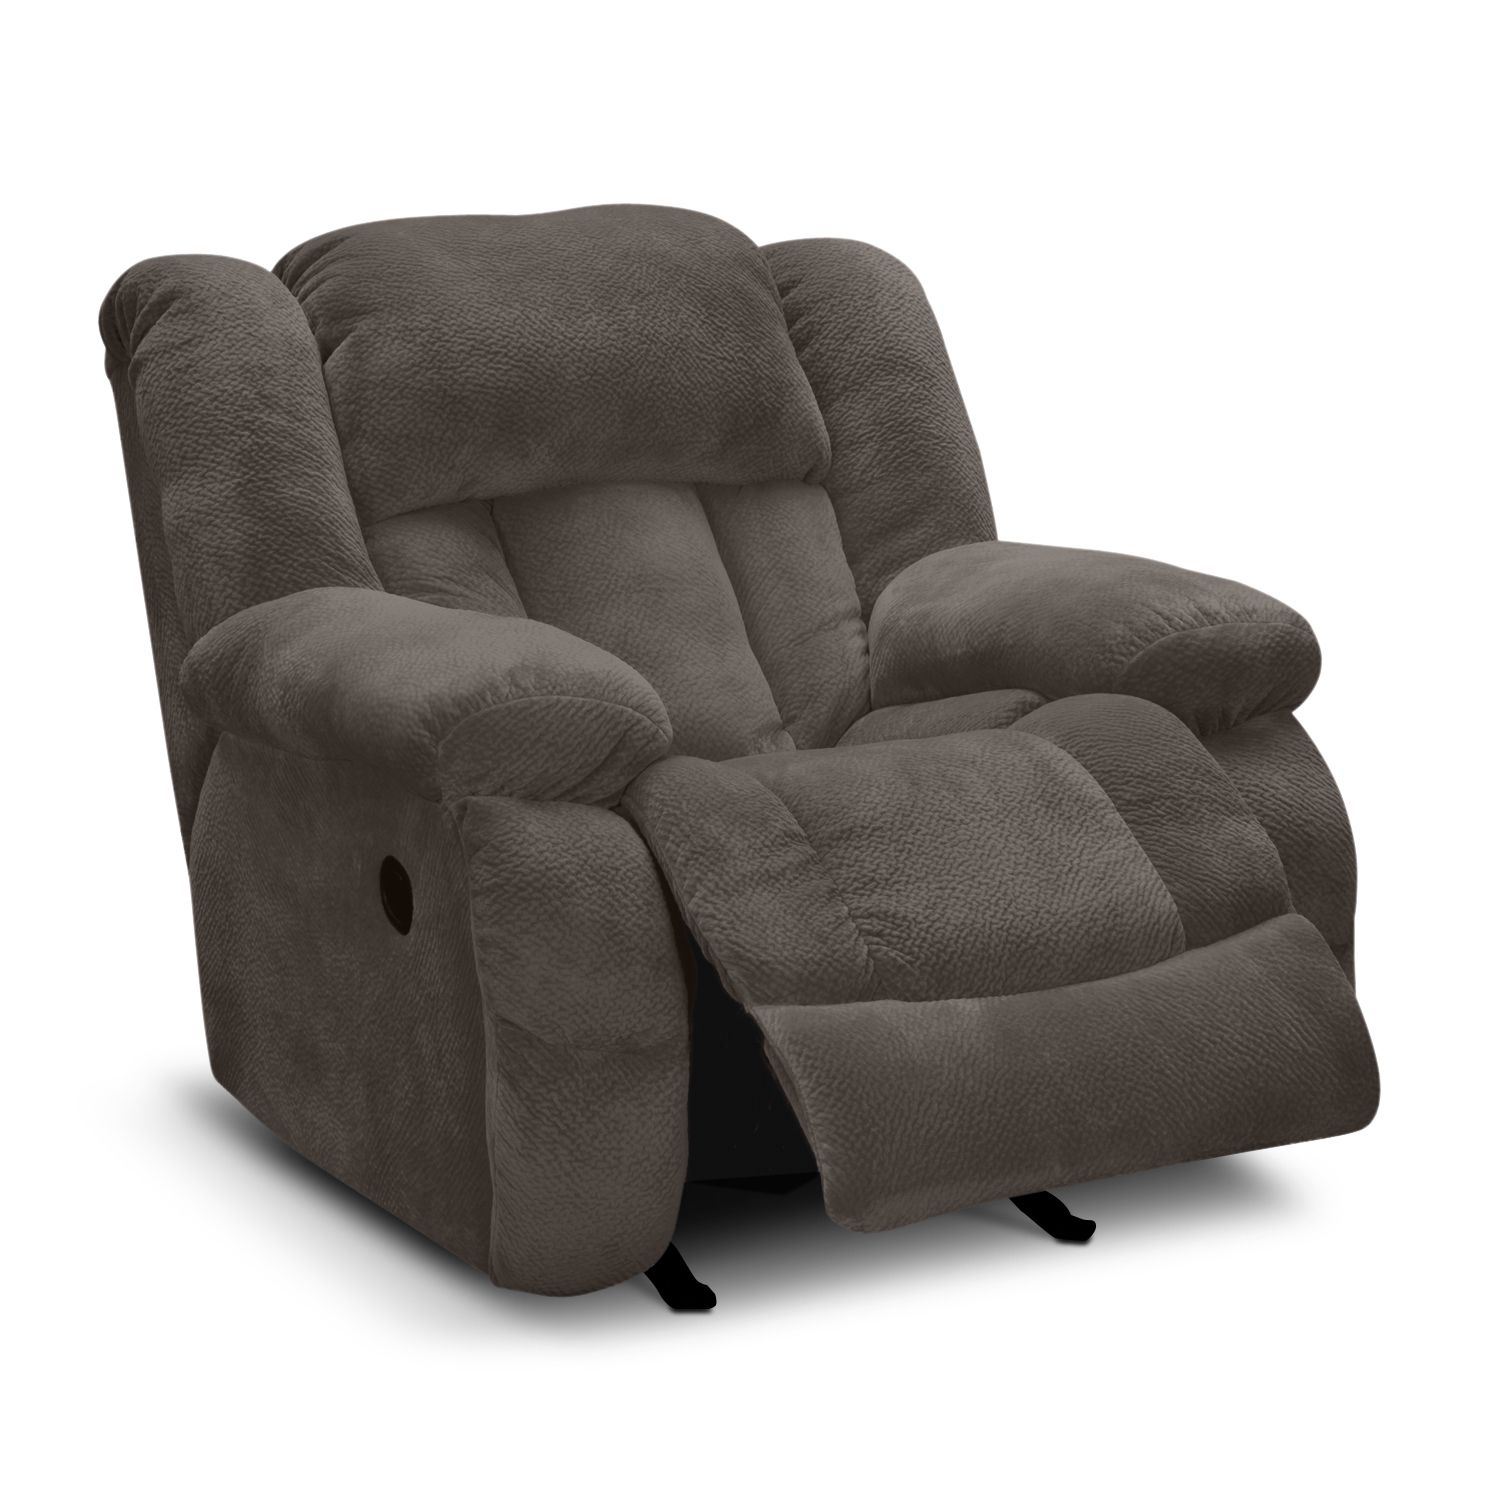 Vcfcontest Park City Glider Recliner | Value City Furniture Inside Katrina Beige Swivel Glider Chairs (Photo 15 of 25)